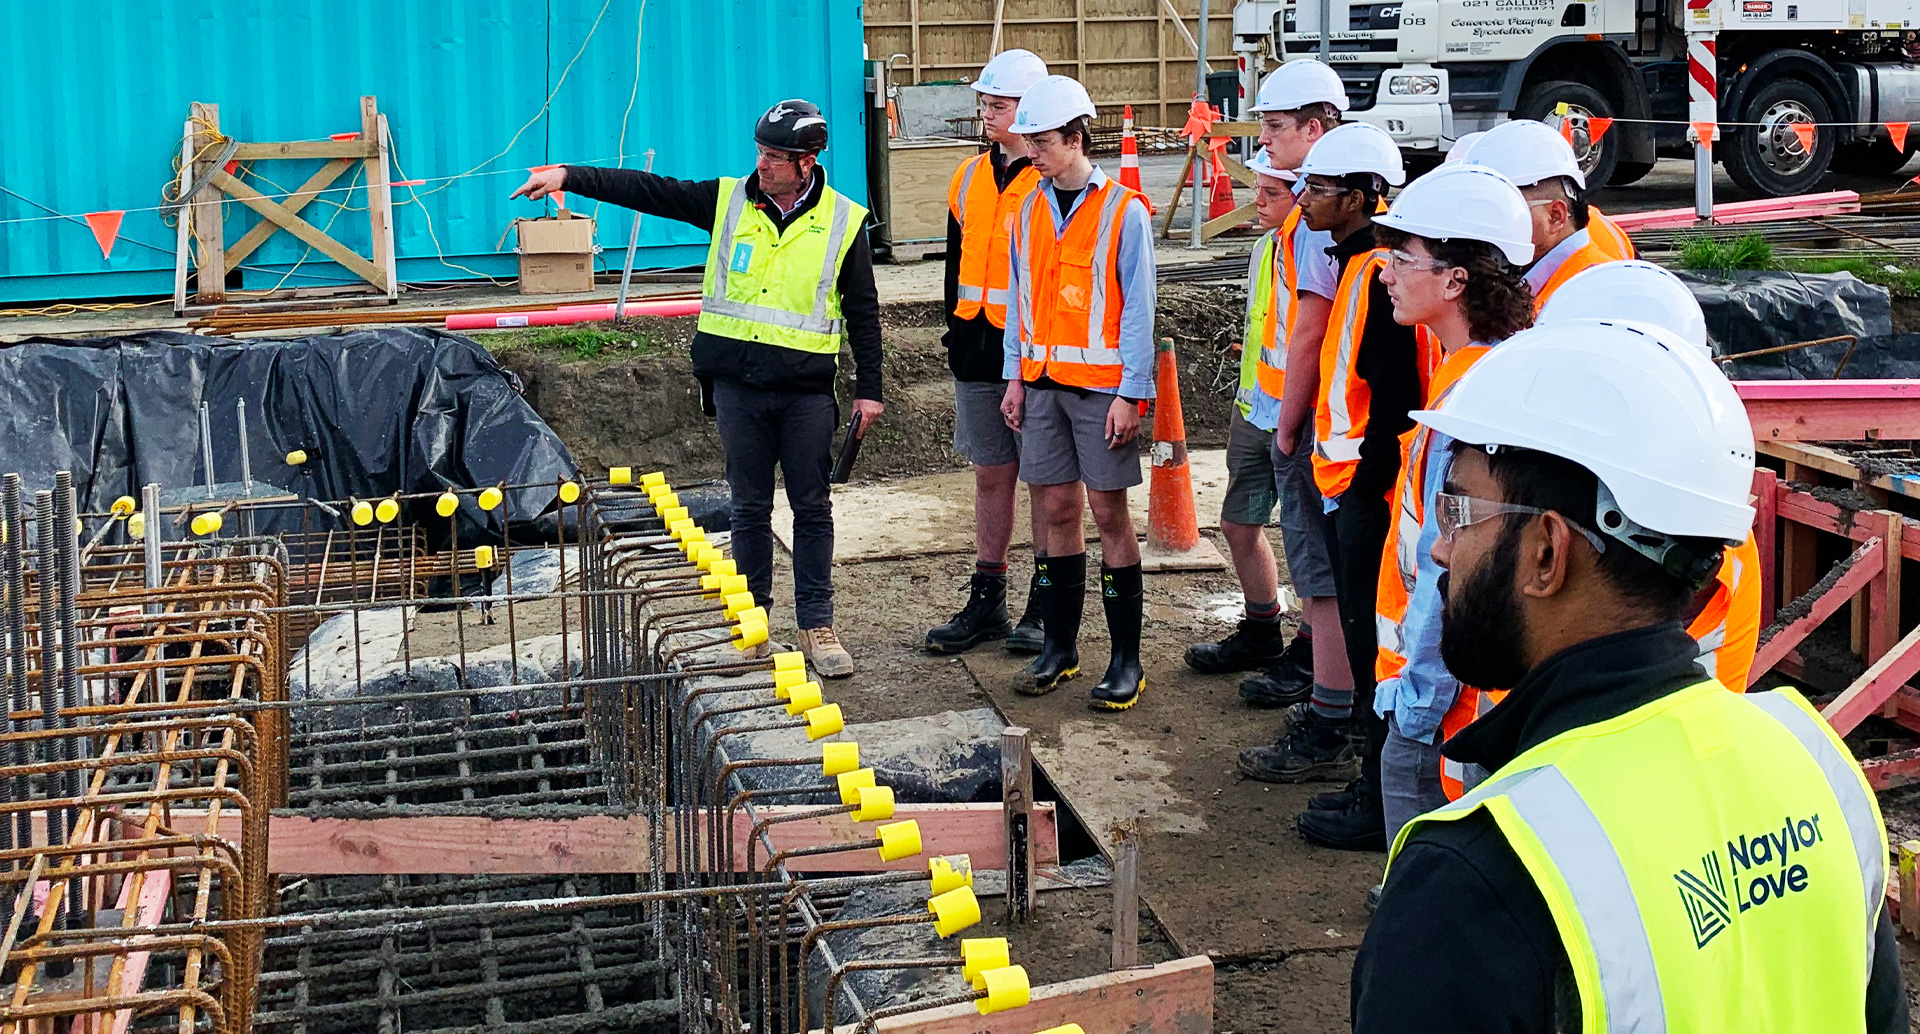 Students in hi-vis and hard hats